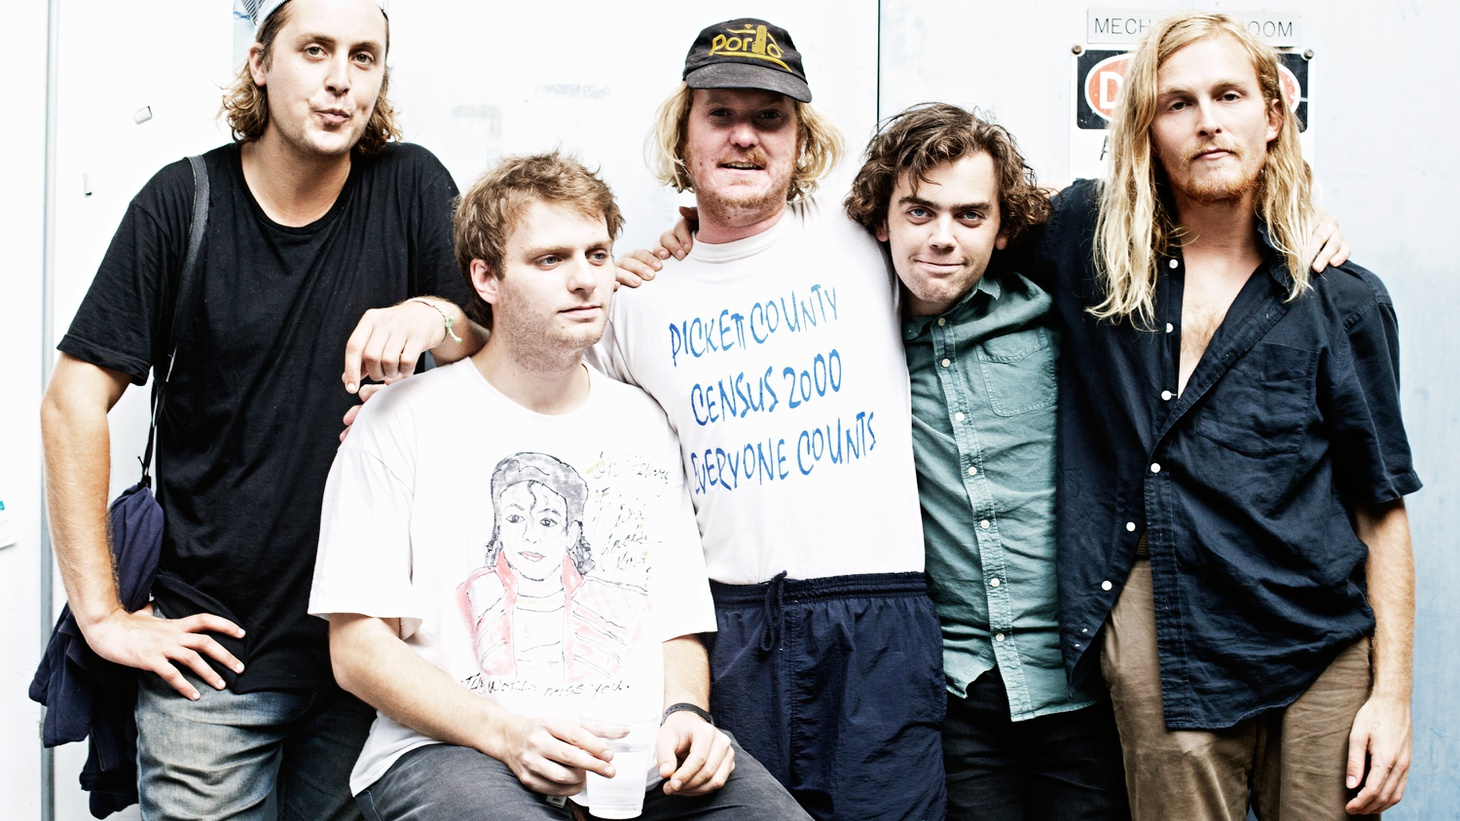 Mac DeMarco has been on a roll the last couple years. Born in Canada and based in Queens, New York, he specializes in a brand of quirky breezy pop that is uniquely his own.